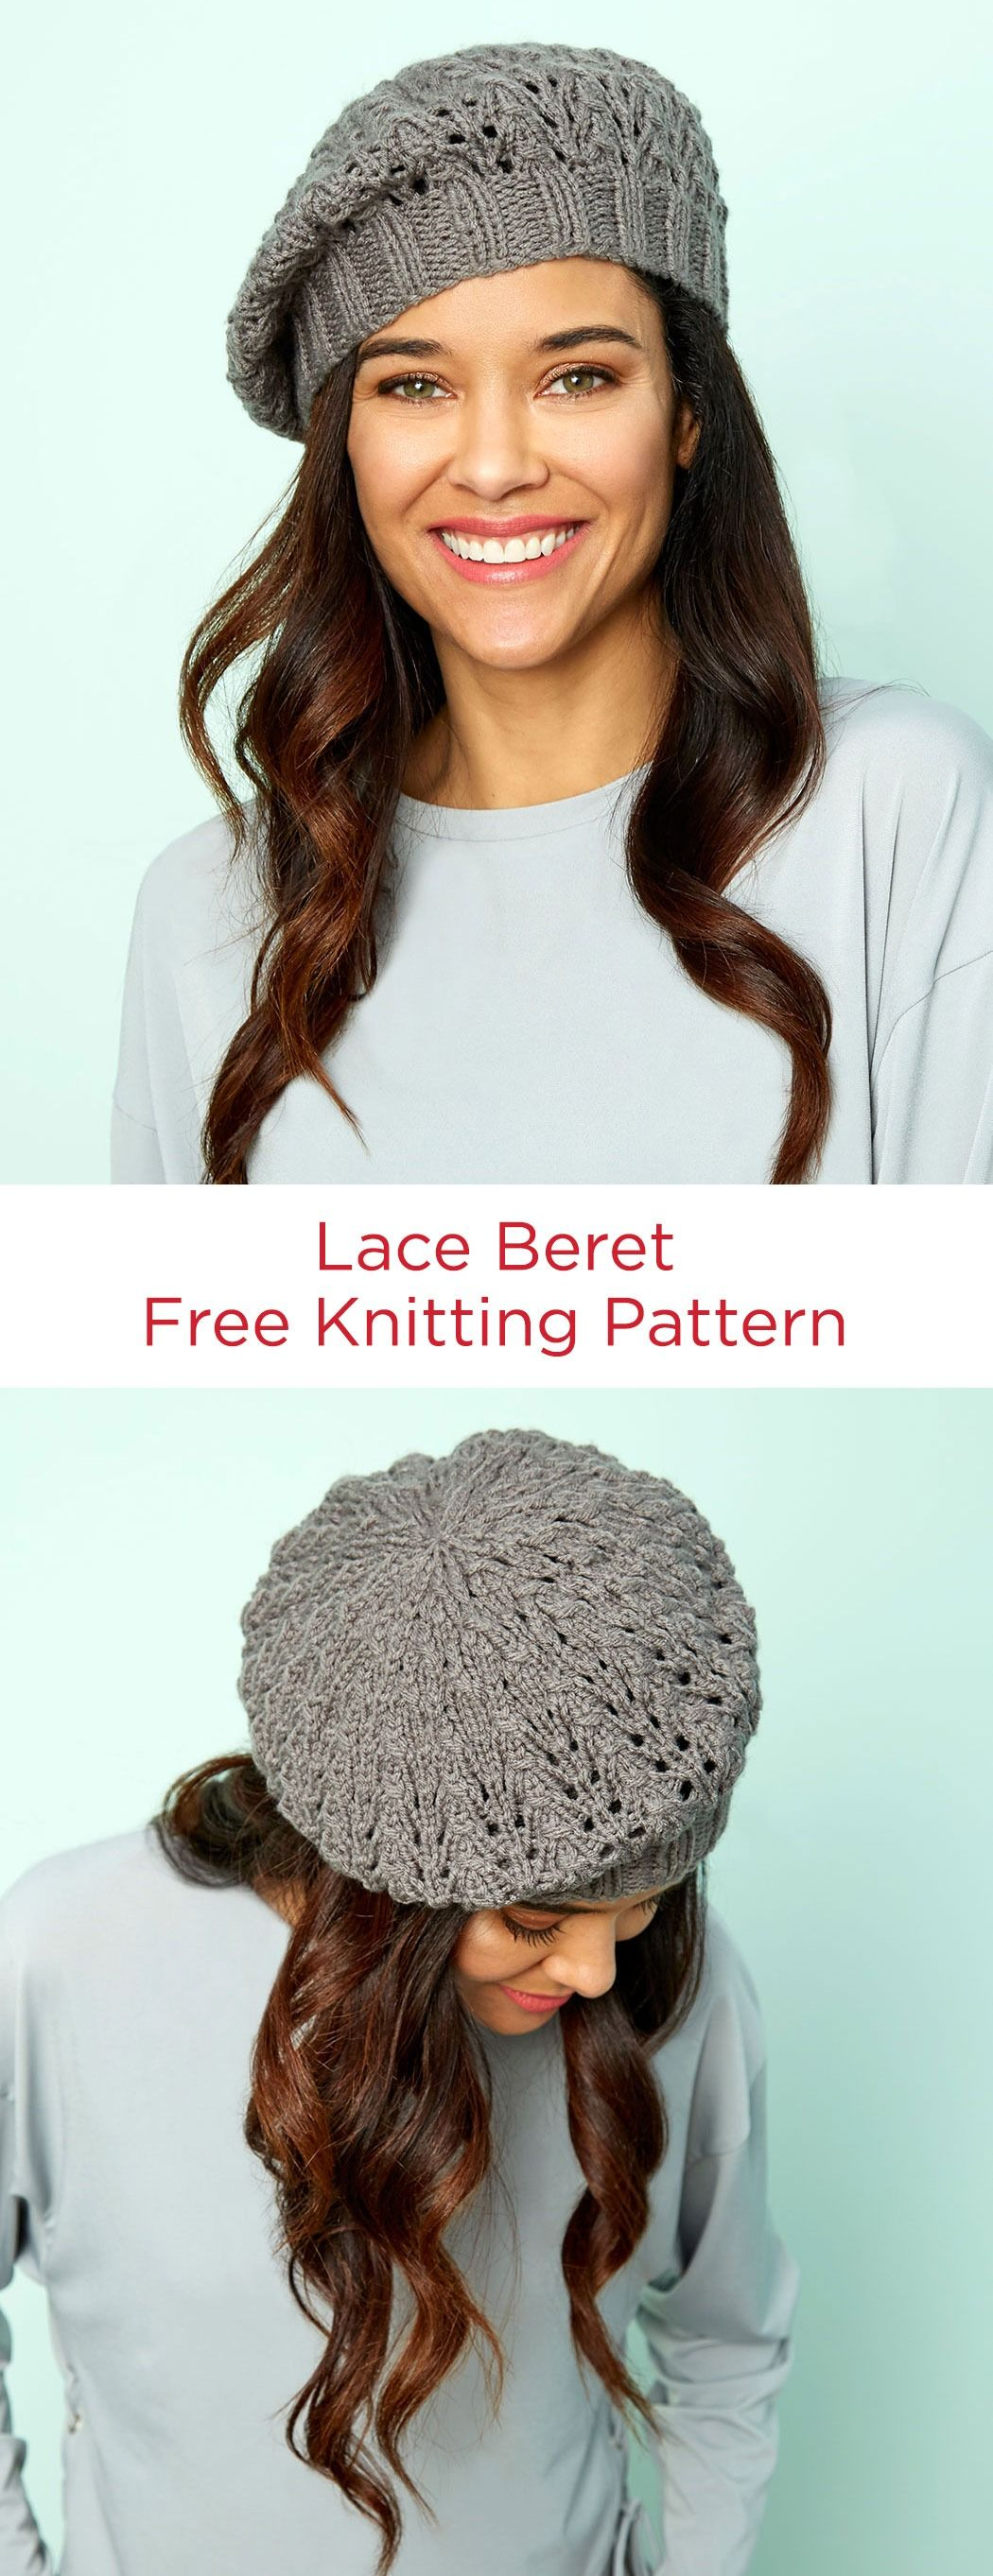 Lace Beret Free Knitting Pattern in Red Heart Yarns -- A lacy update ...